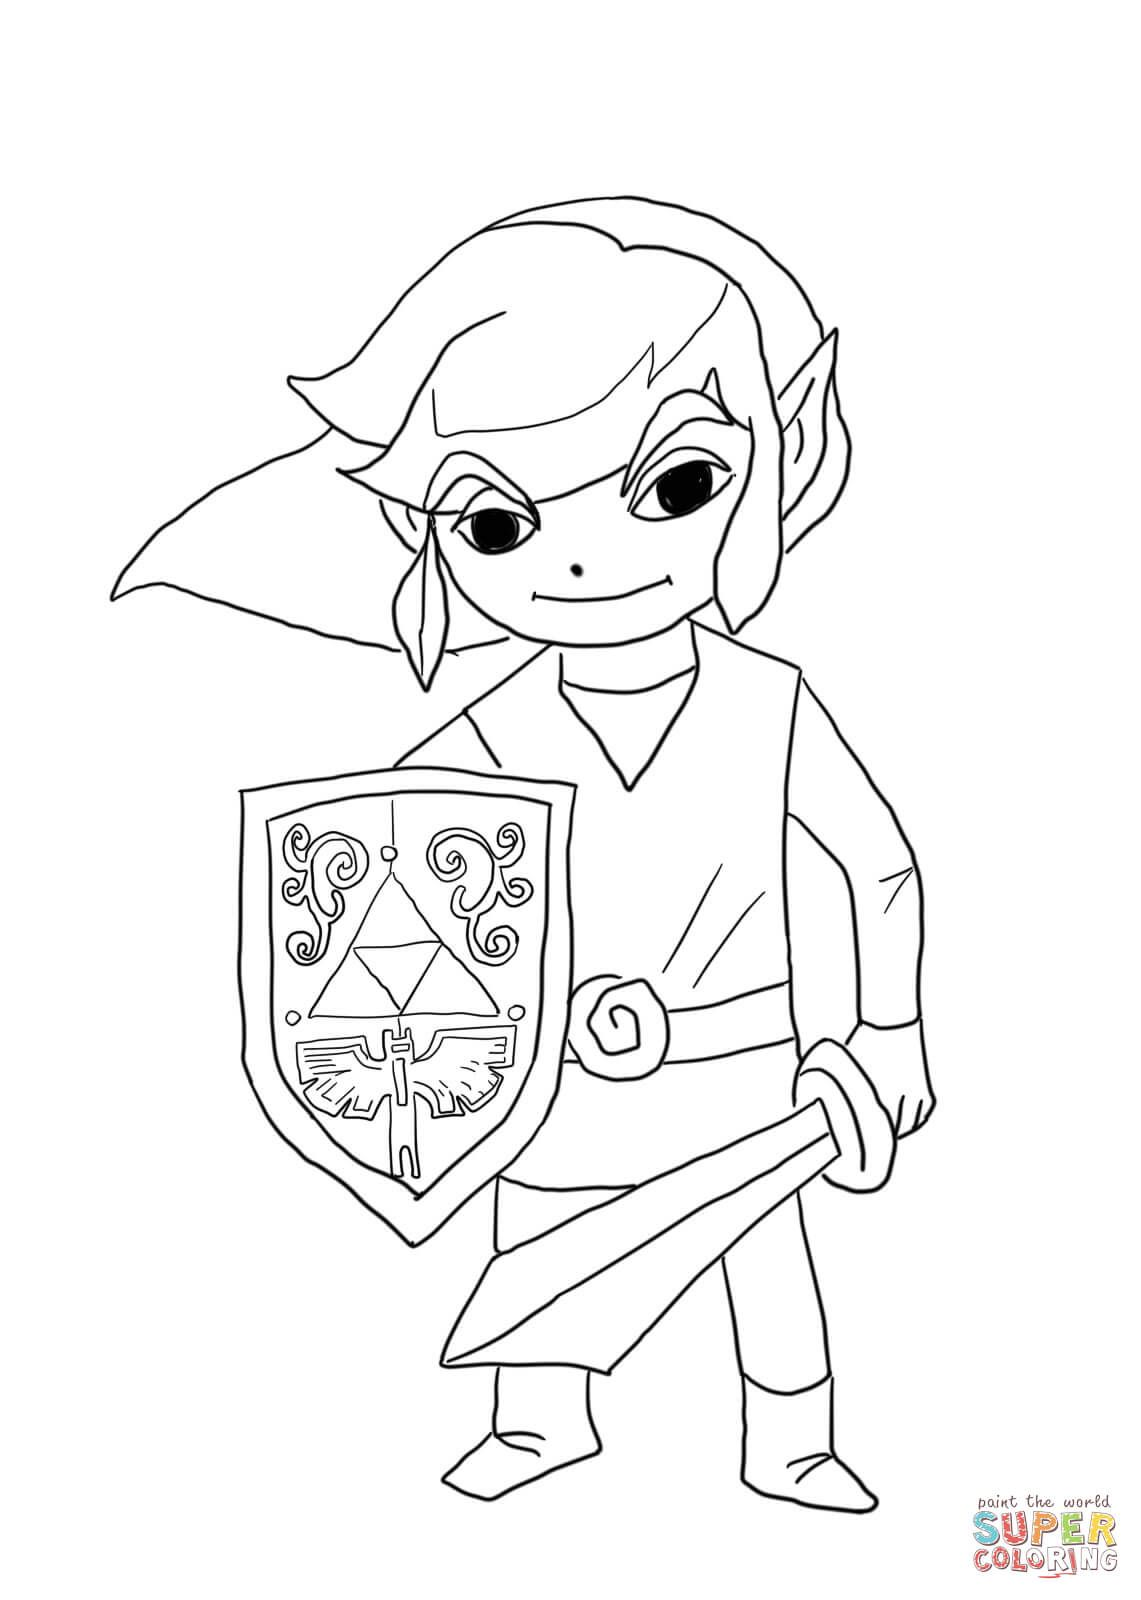 Toon Link From Legend Of Zelda Wind Waker Coloring Page Free